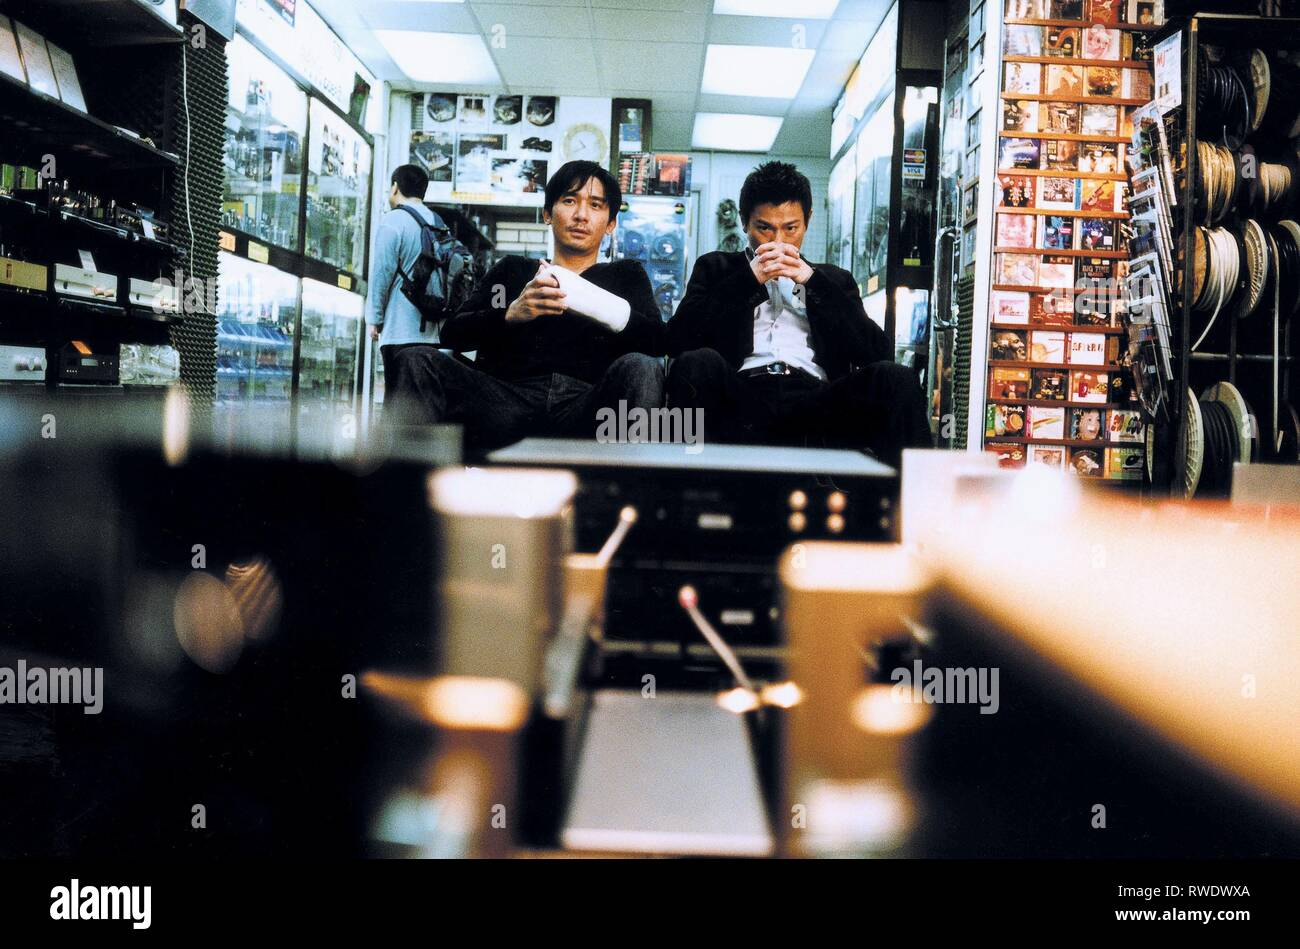 WAI,LAU, INFERNAL AFFAIRS, 2002 - Stock Image